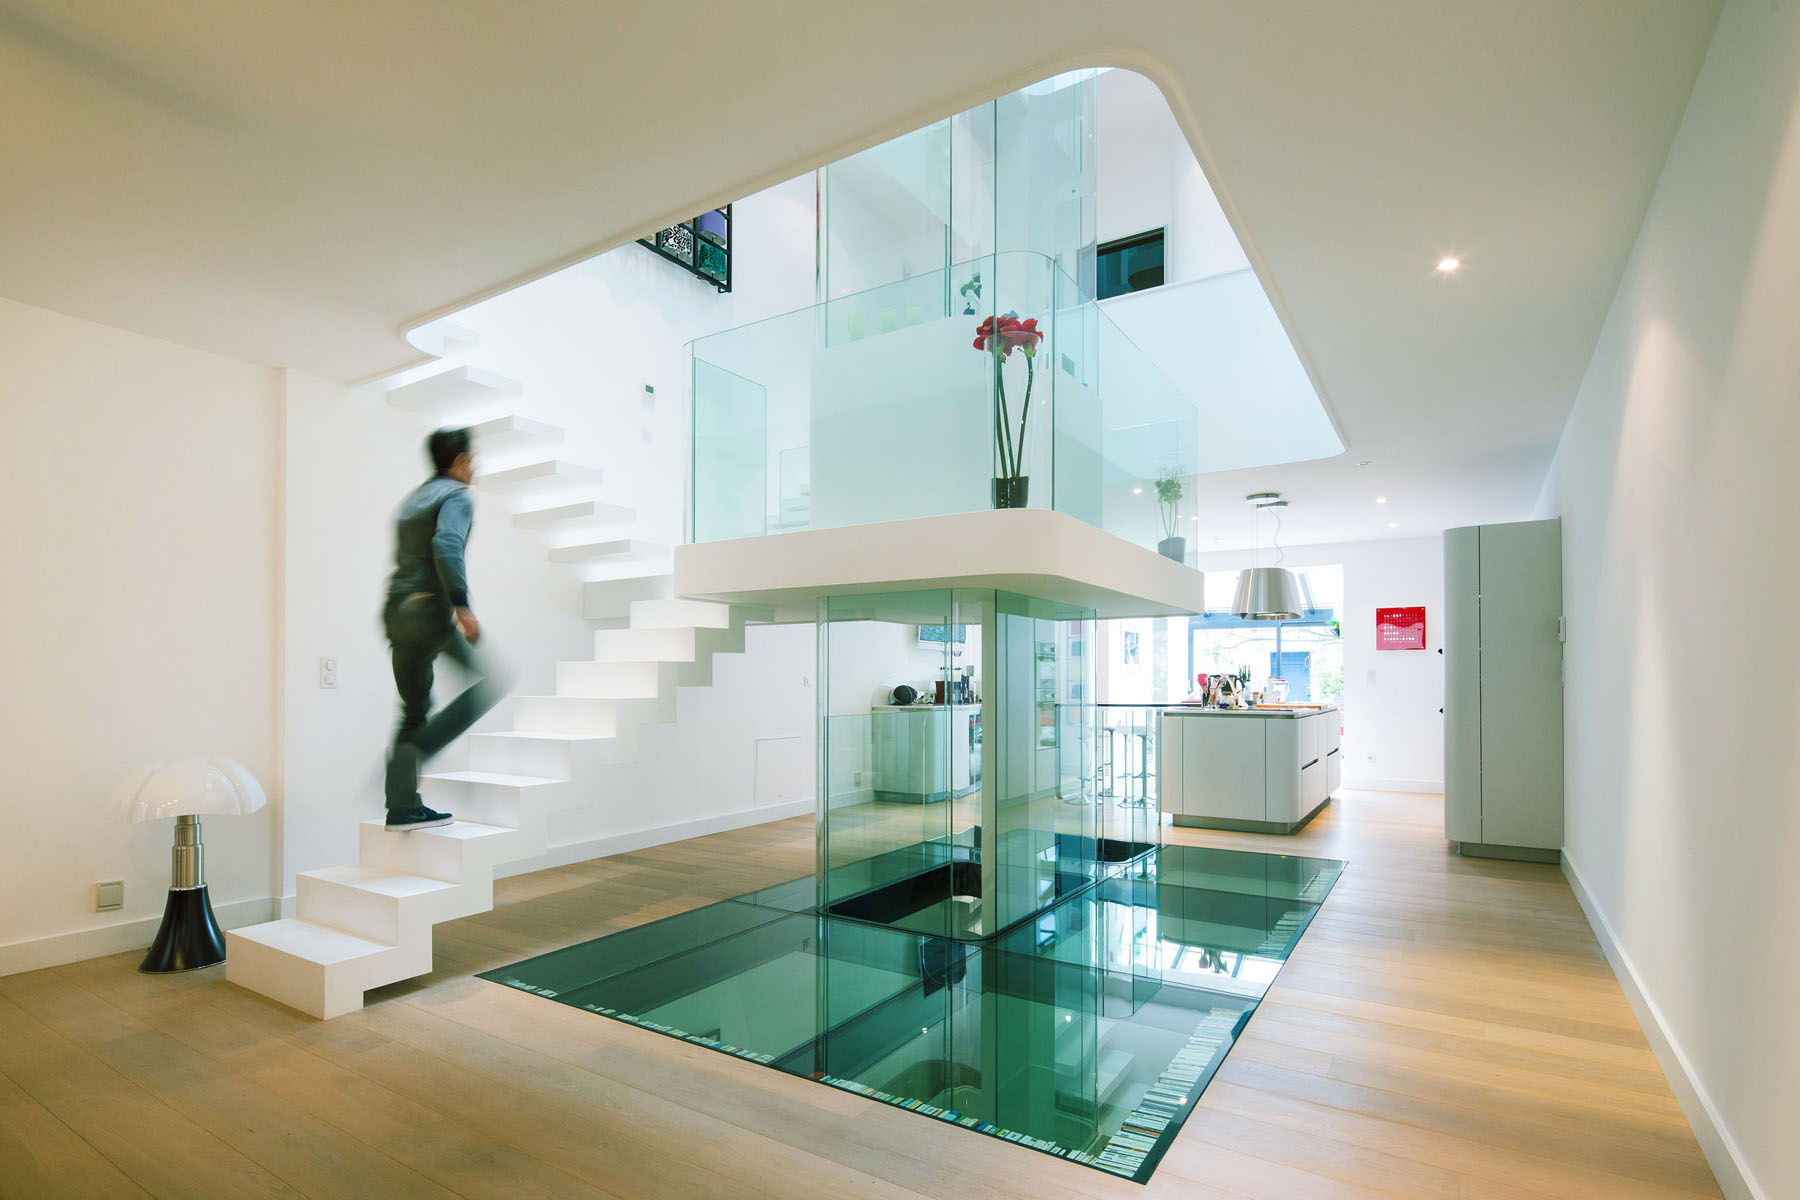 Futuristic Townhouse With Central Glass Axis Idesignarch Interior Design Architecture